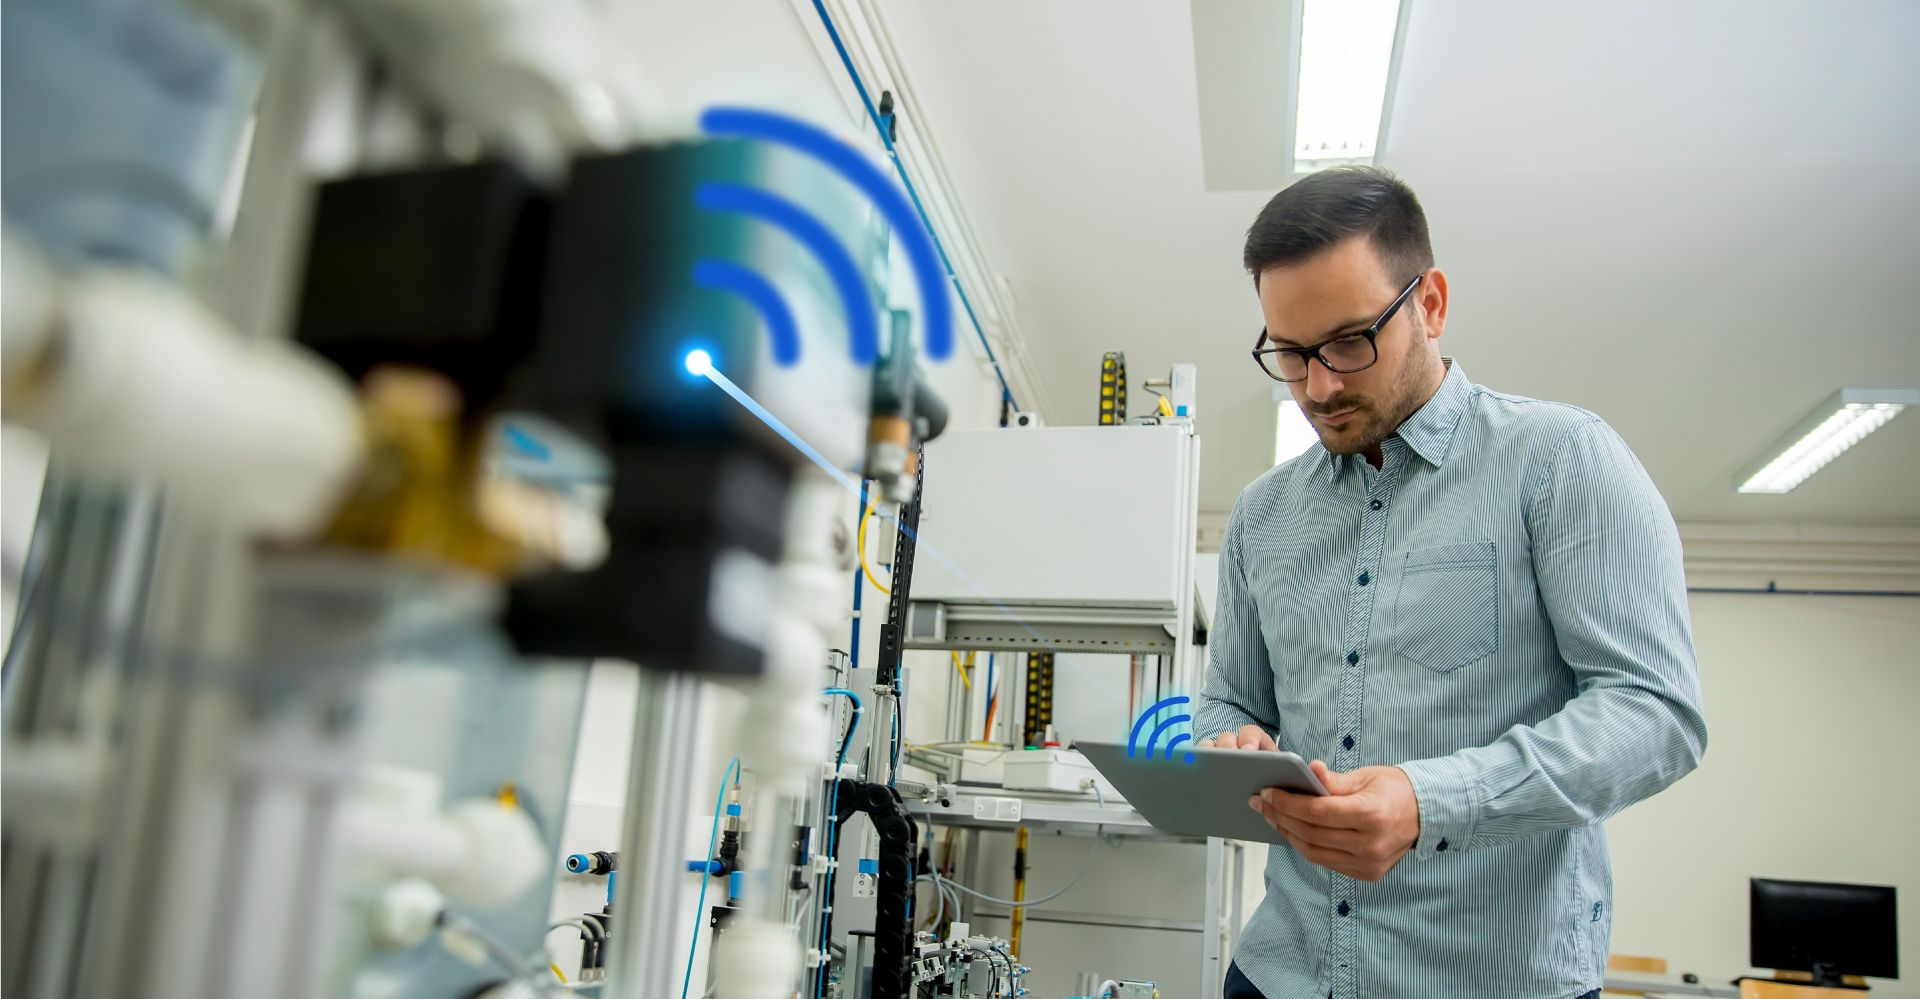 The First Steps of your IIoT Implementation   IXON Cloud